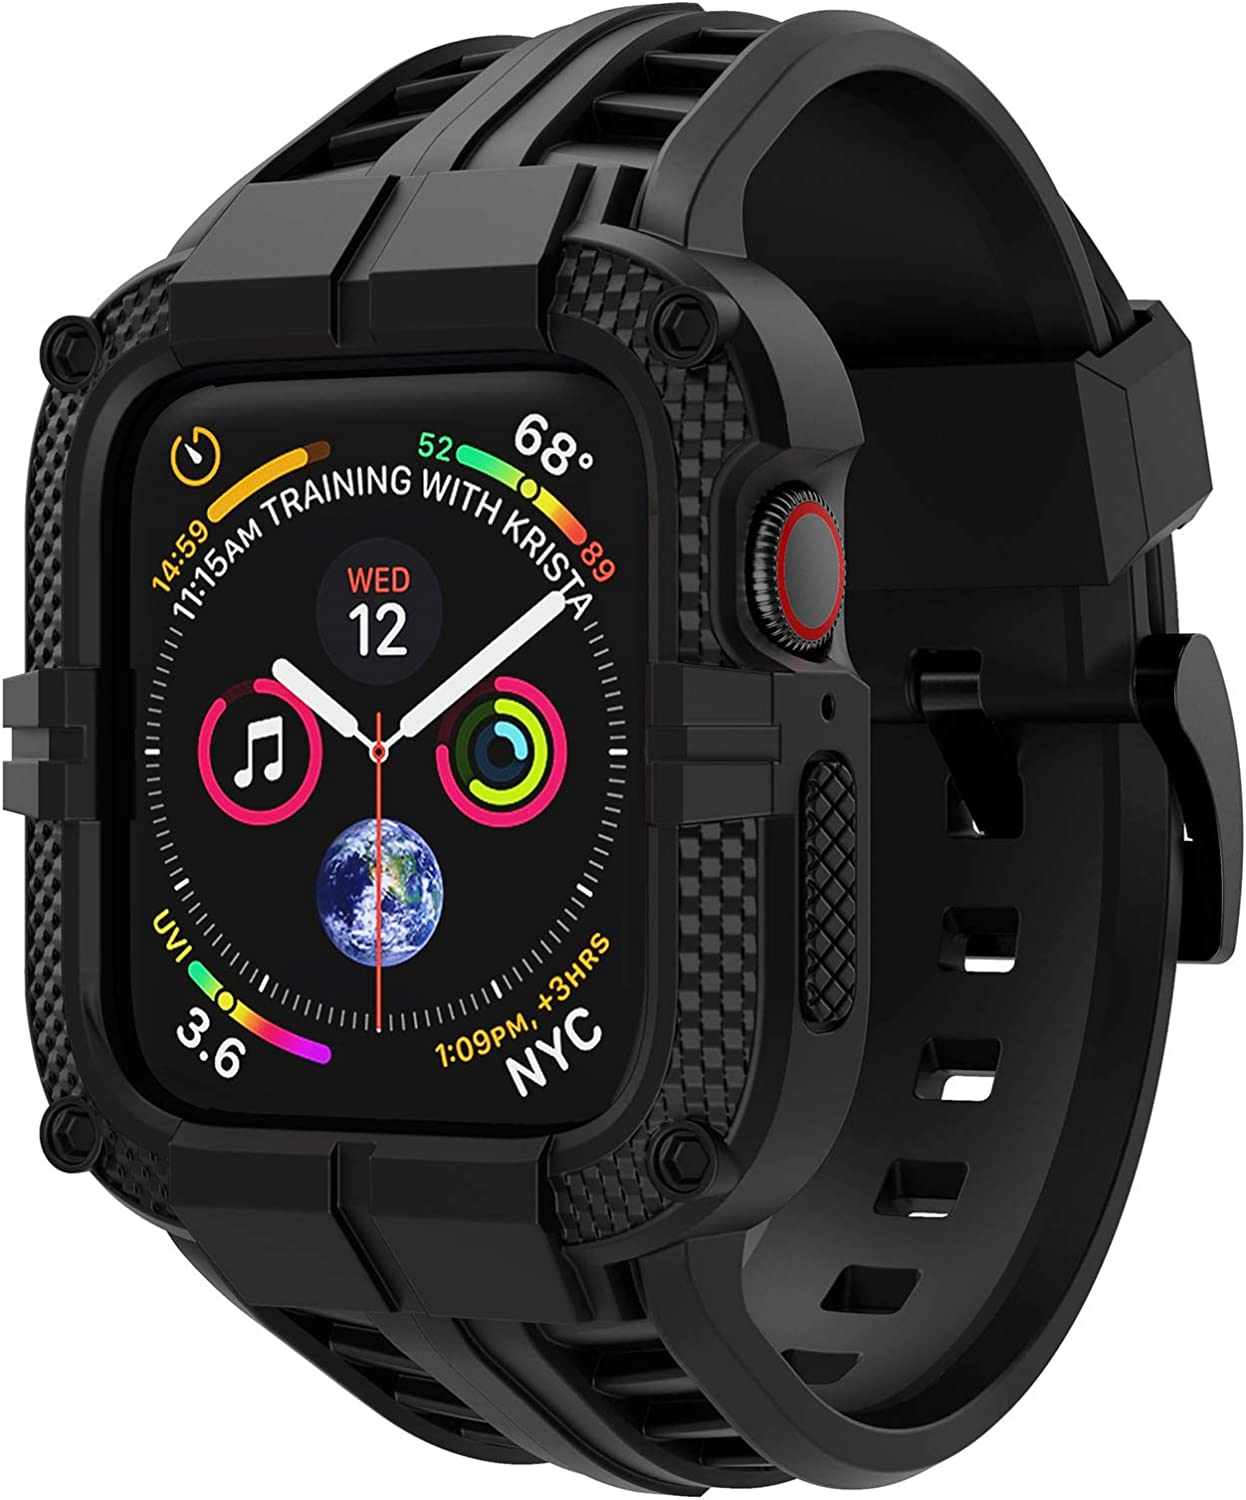 T-ENGINE Band Compatible with Apple Watch Band 40mm 38mm Series 6 Series 5/4/SE Series 3/2/1, TPU Rugged Band with Full Protection Case for Women/Men, Black